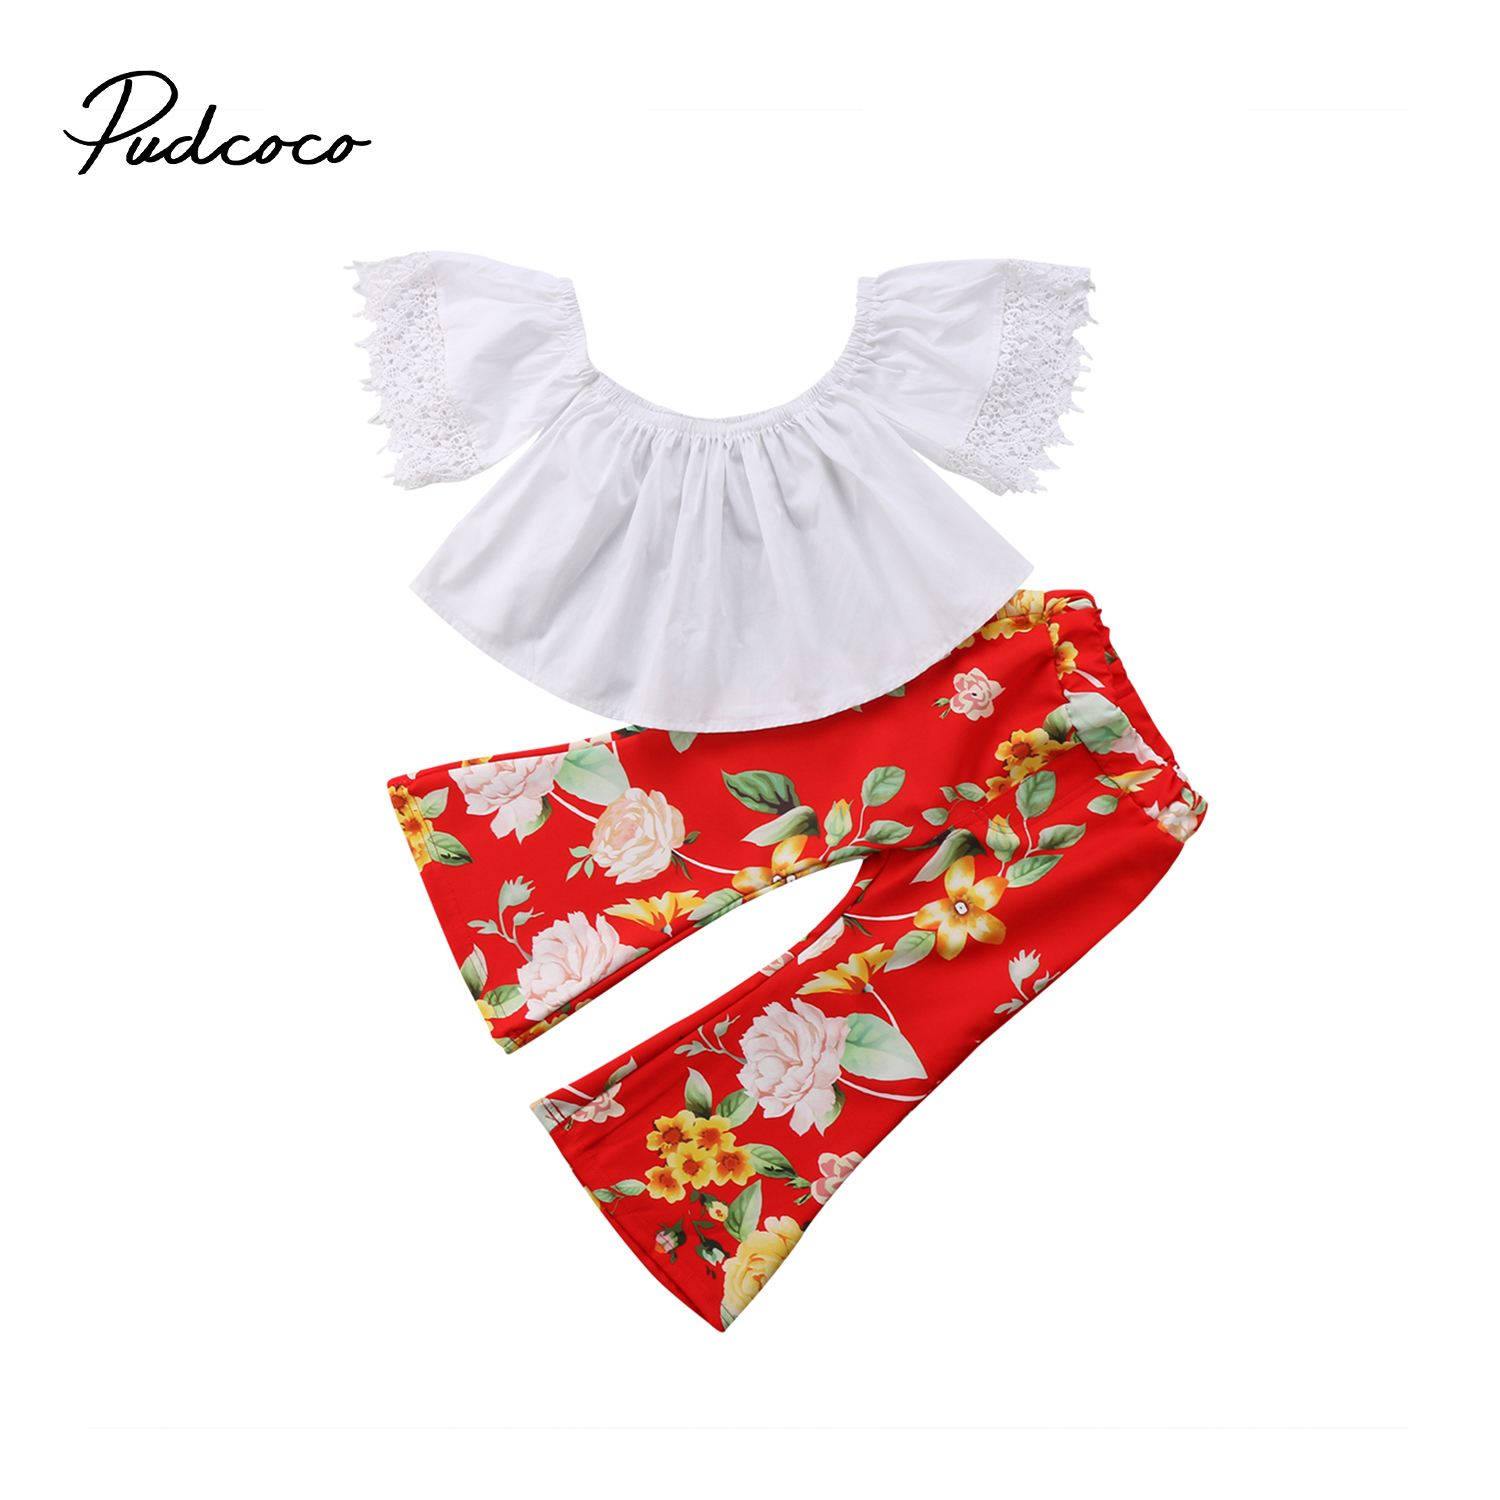 Kids Baby Girls Lace Floral Off Shoulder Top Short Sleeve Shirt Bell-Bottom Legging Outfits Summer Toddler Girl Clothing